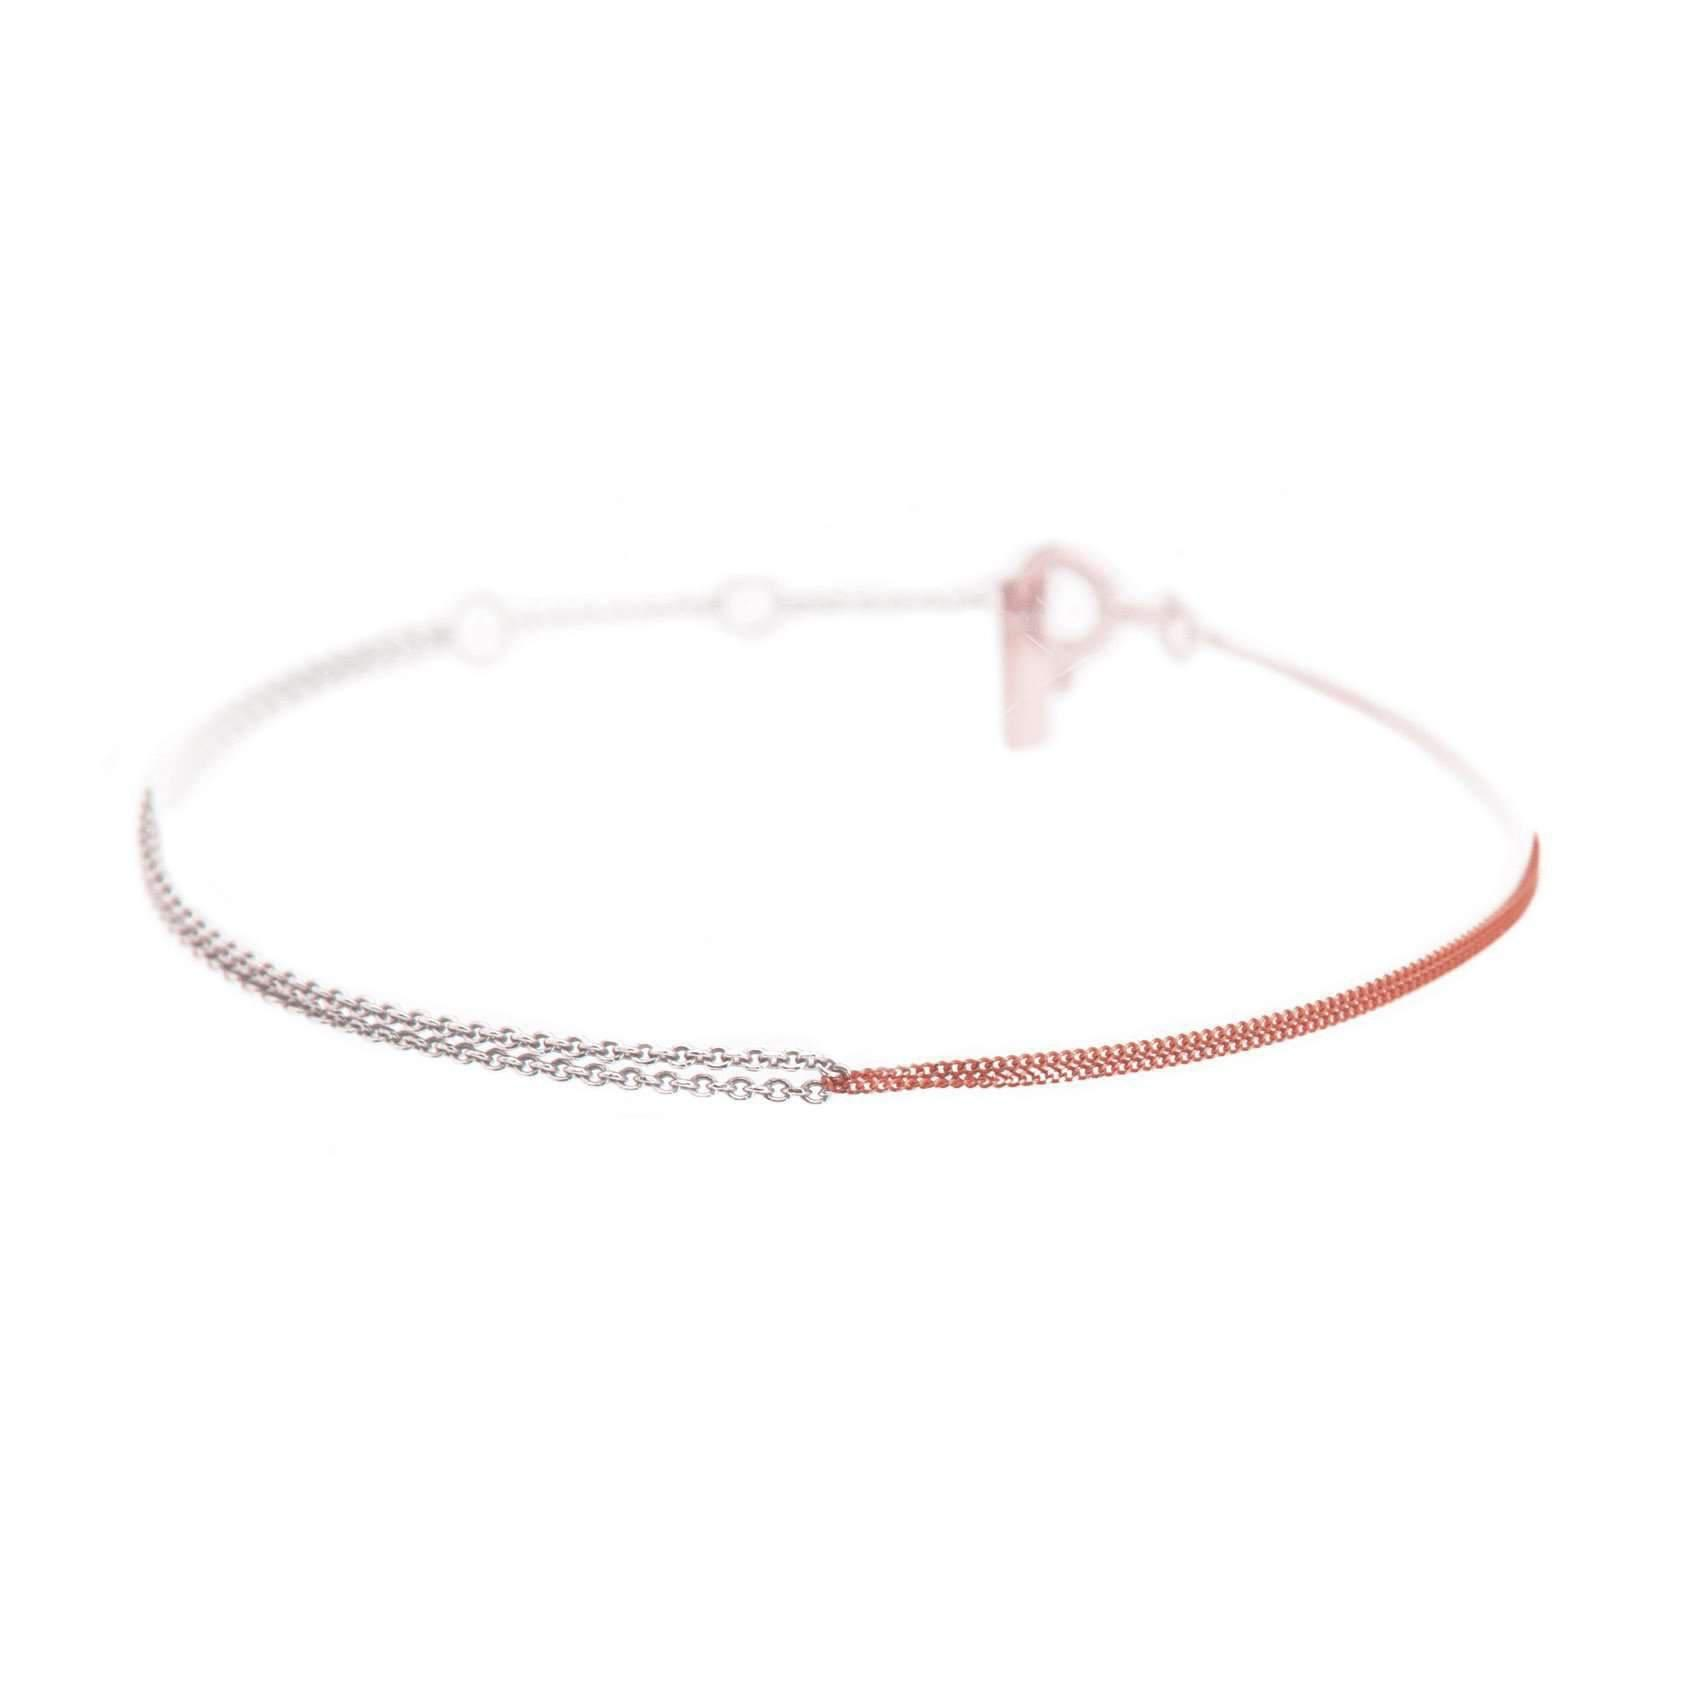 Dutch Basics Interlinked Chain Necklace - Silver & Rose GvAmiOx2